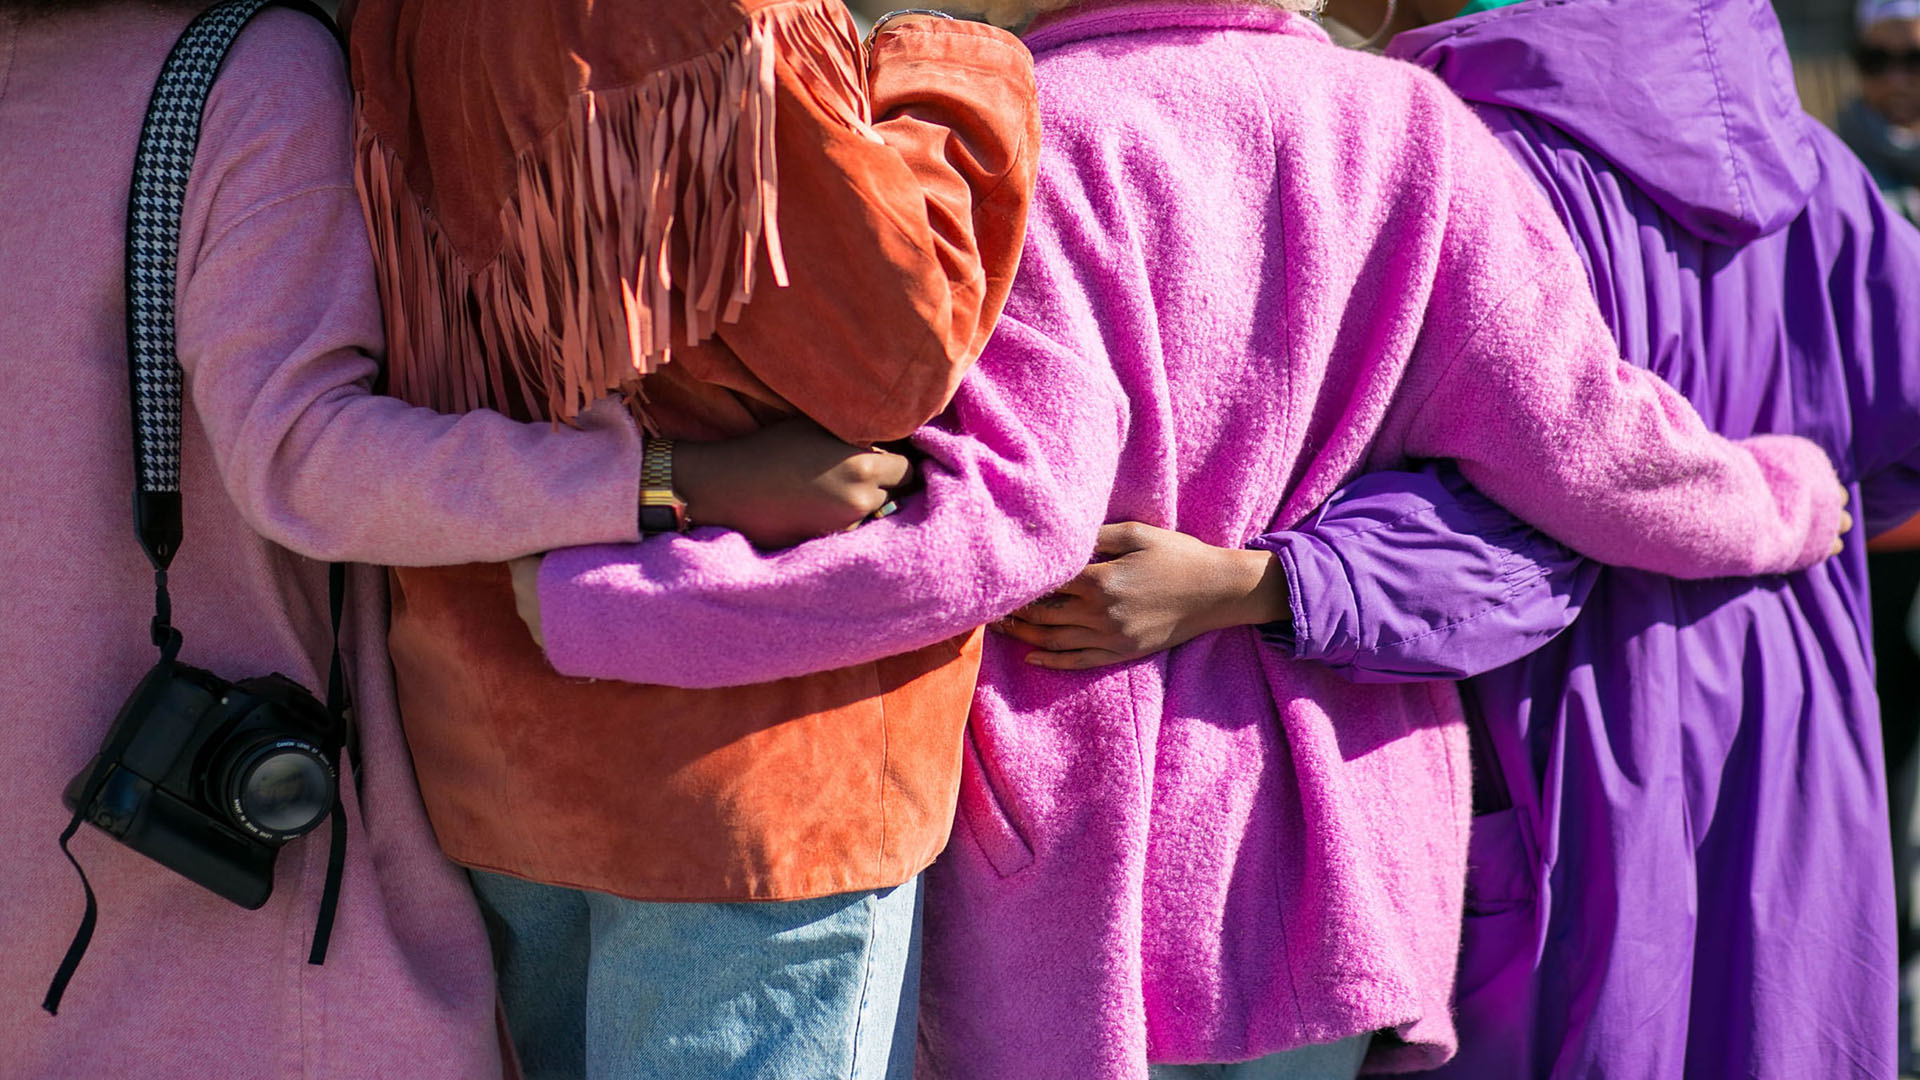 Four women facing away from the camera, their arms are linked behind their backs. They are wearing purple, red and pink coats.